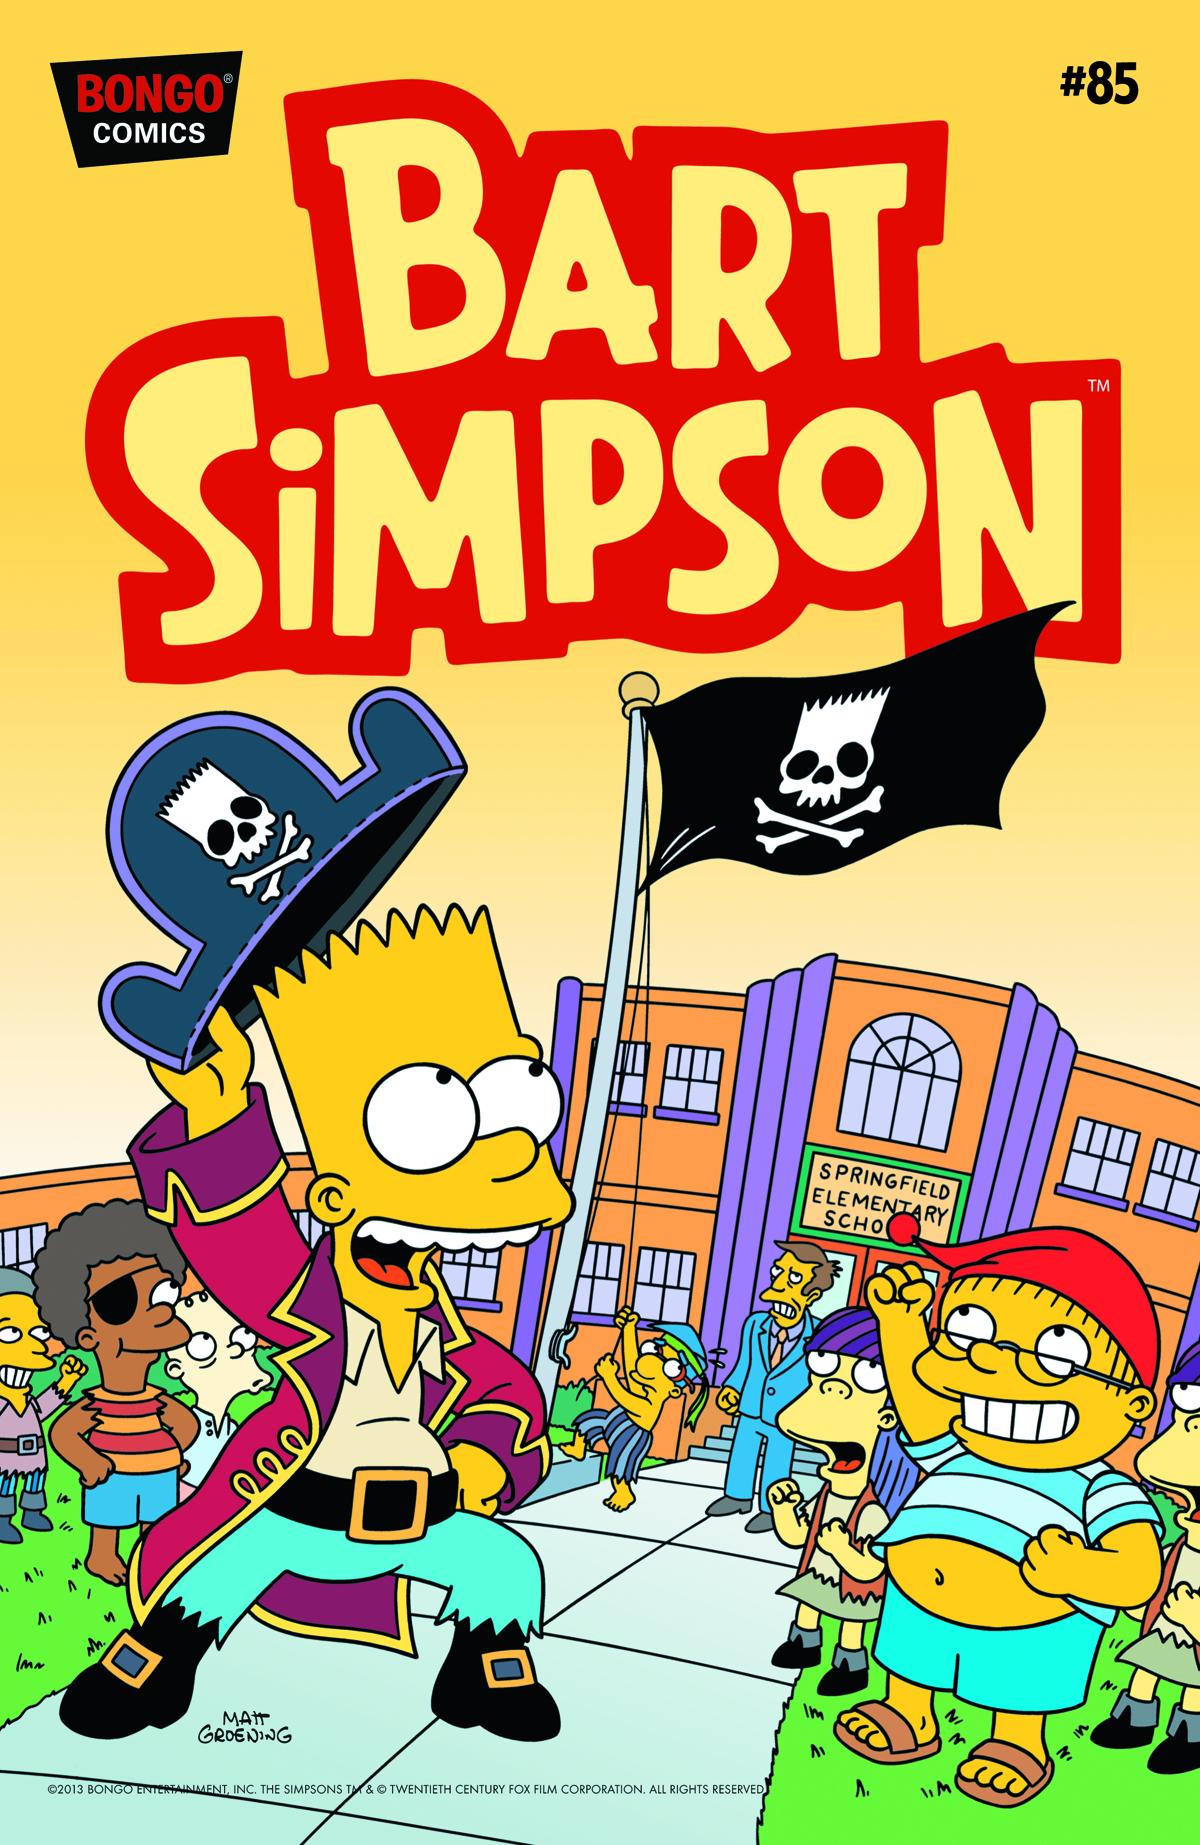 BART SIMPSON COMICS #85